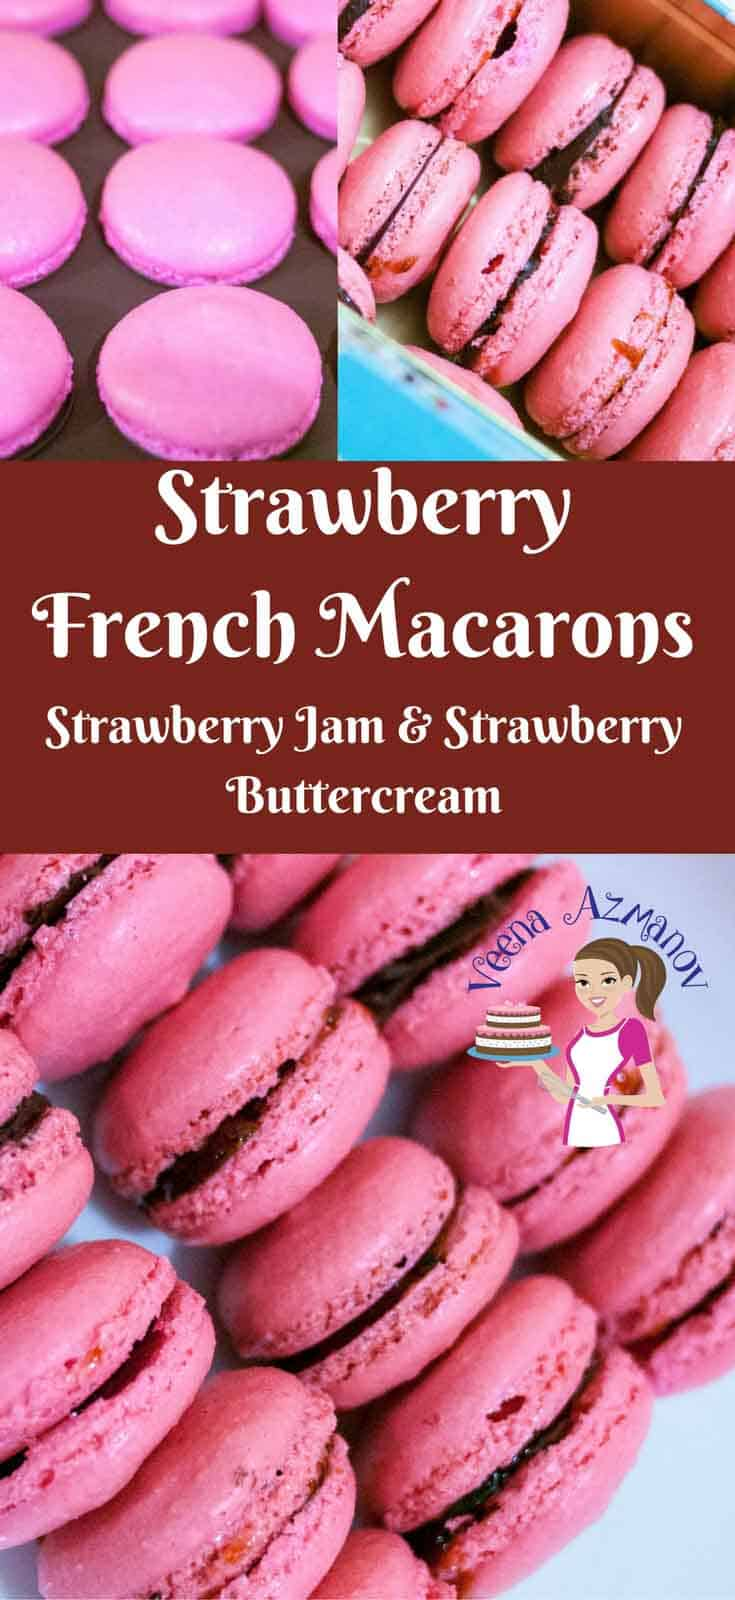 These Strawberry French Macarons are light meringue cookies that will melt in your mouth. Made with Almond meal and filled with delicious and luxurious filling from jams, curds,buttercream or ganache.